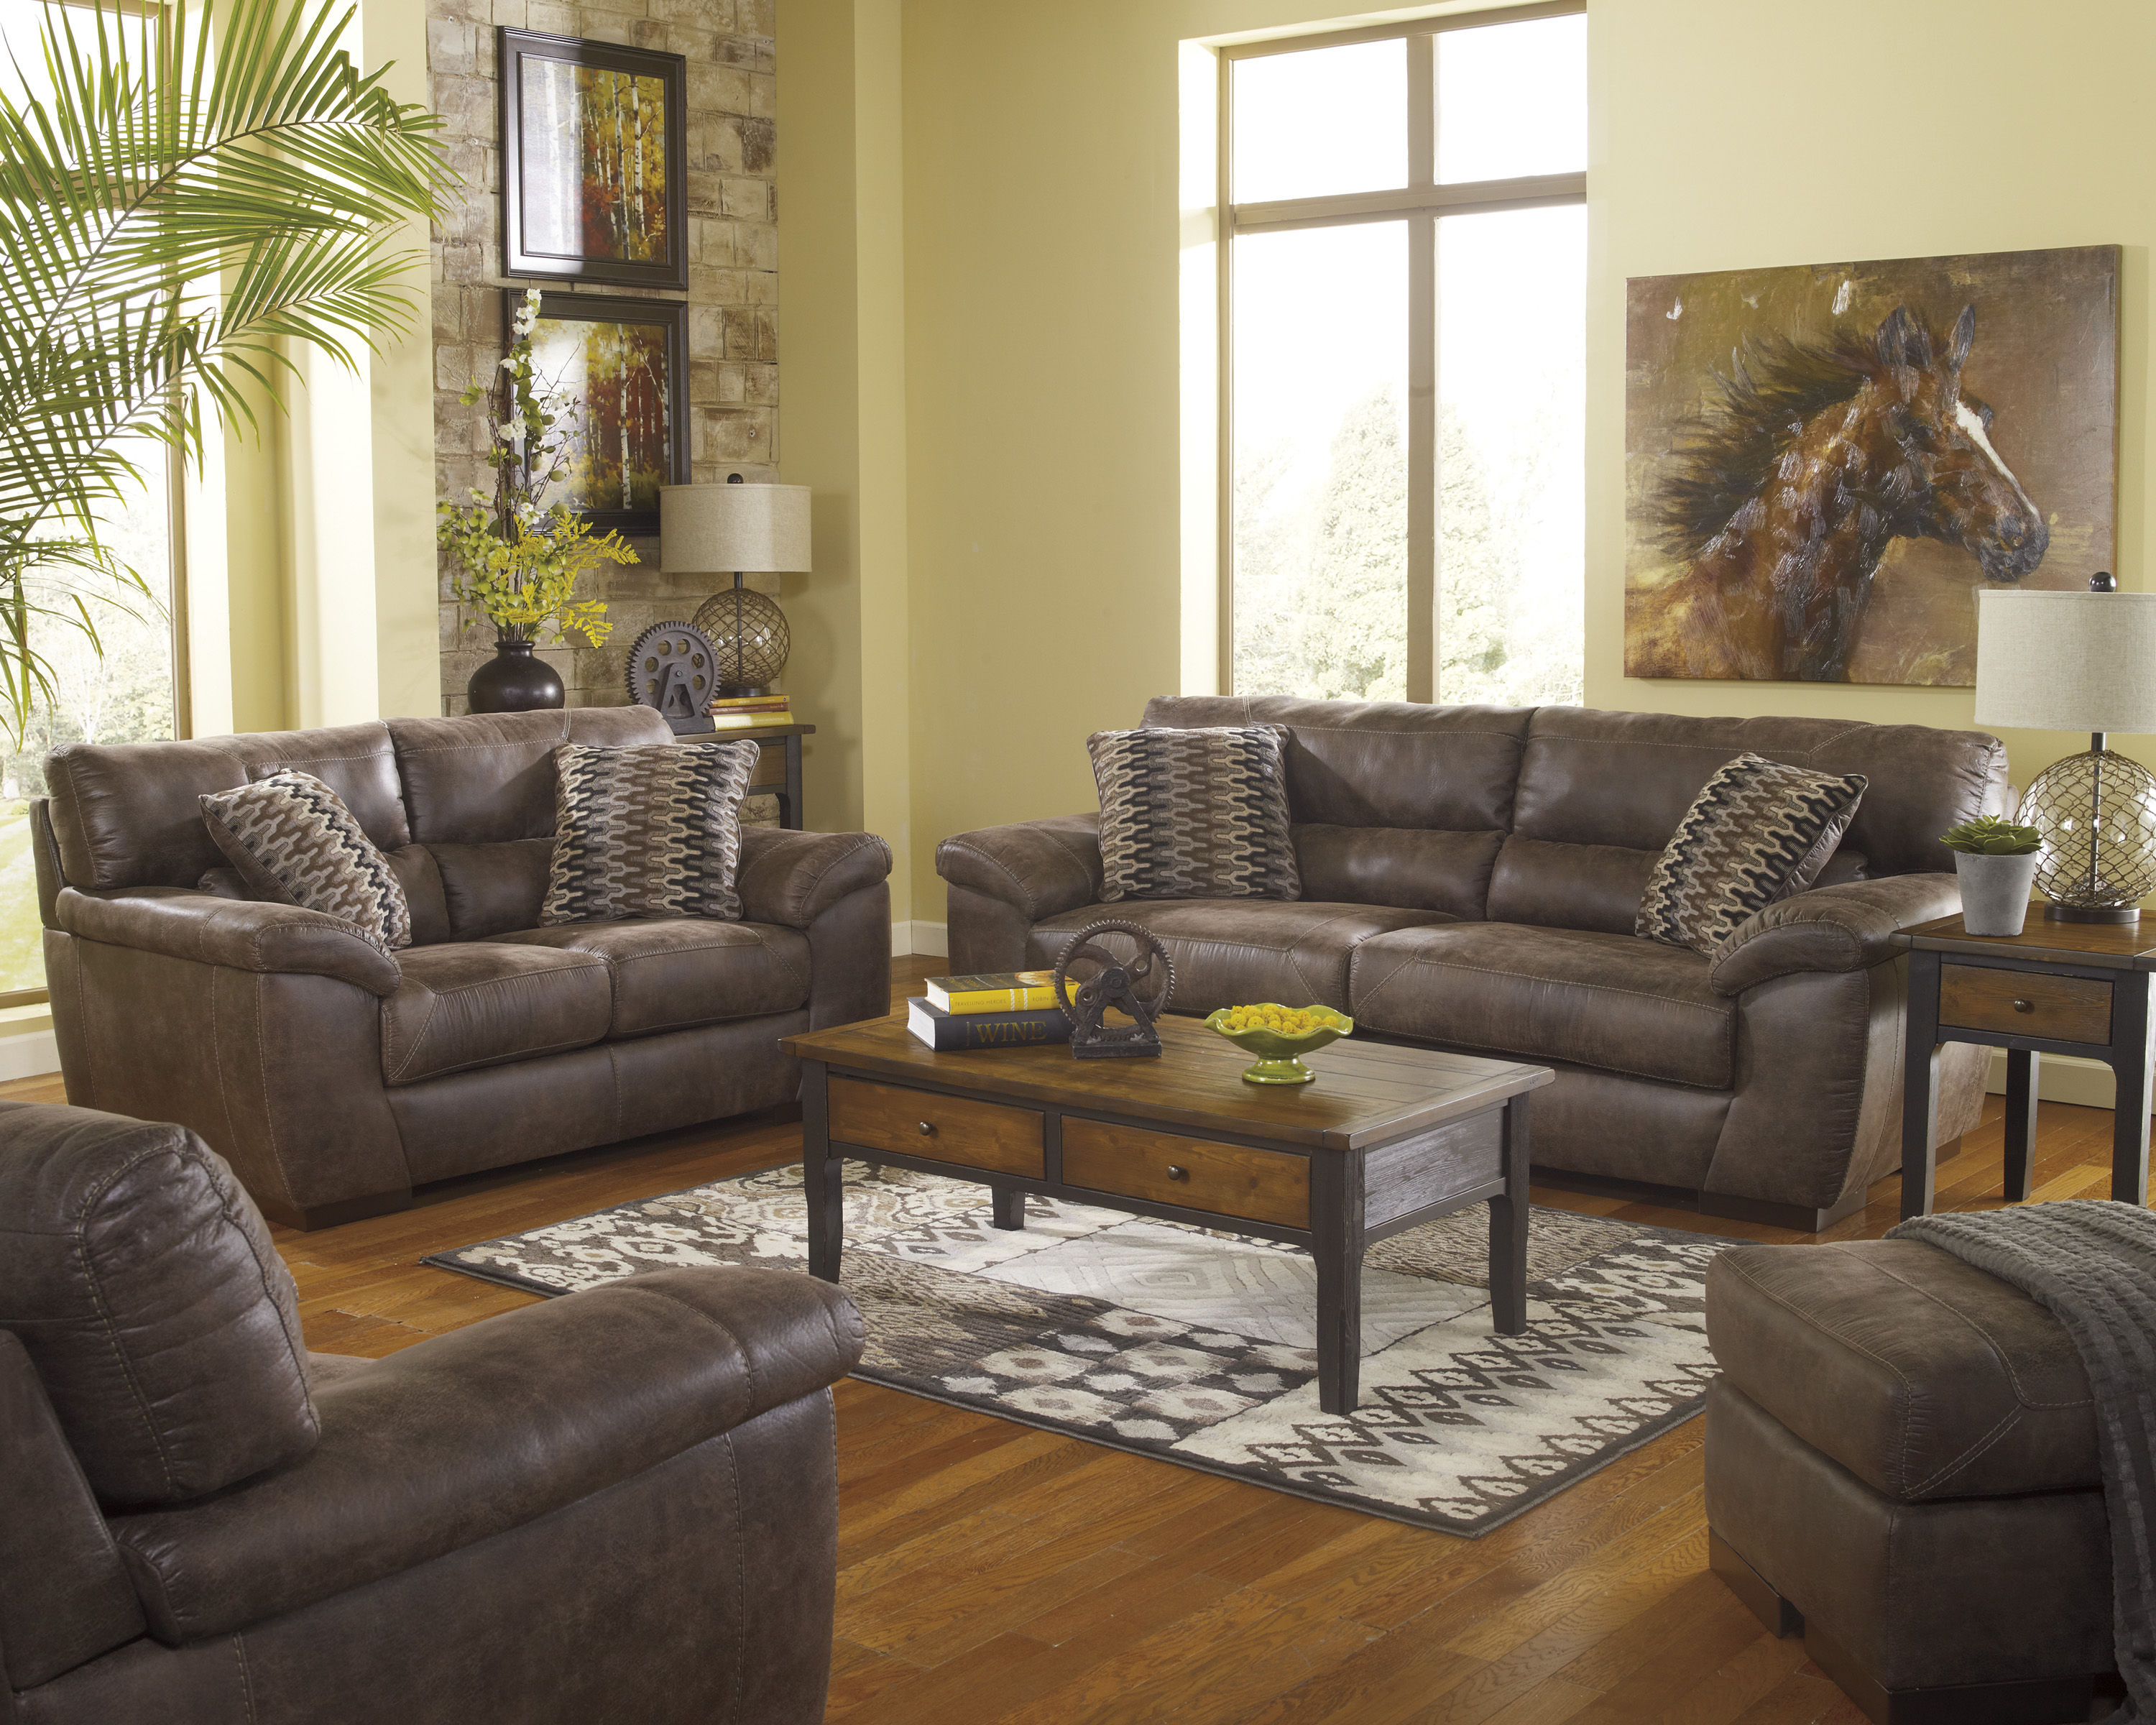 Pikara Gunsmoke Faux Leather Living Room Set The Classy Home